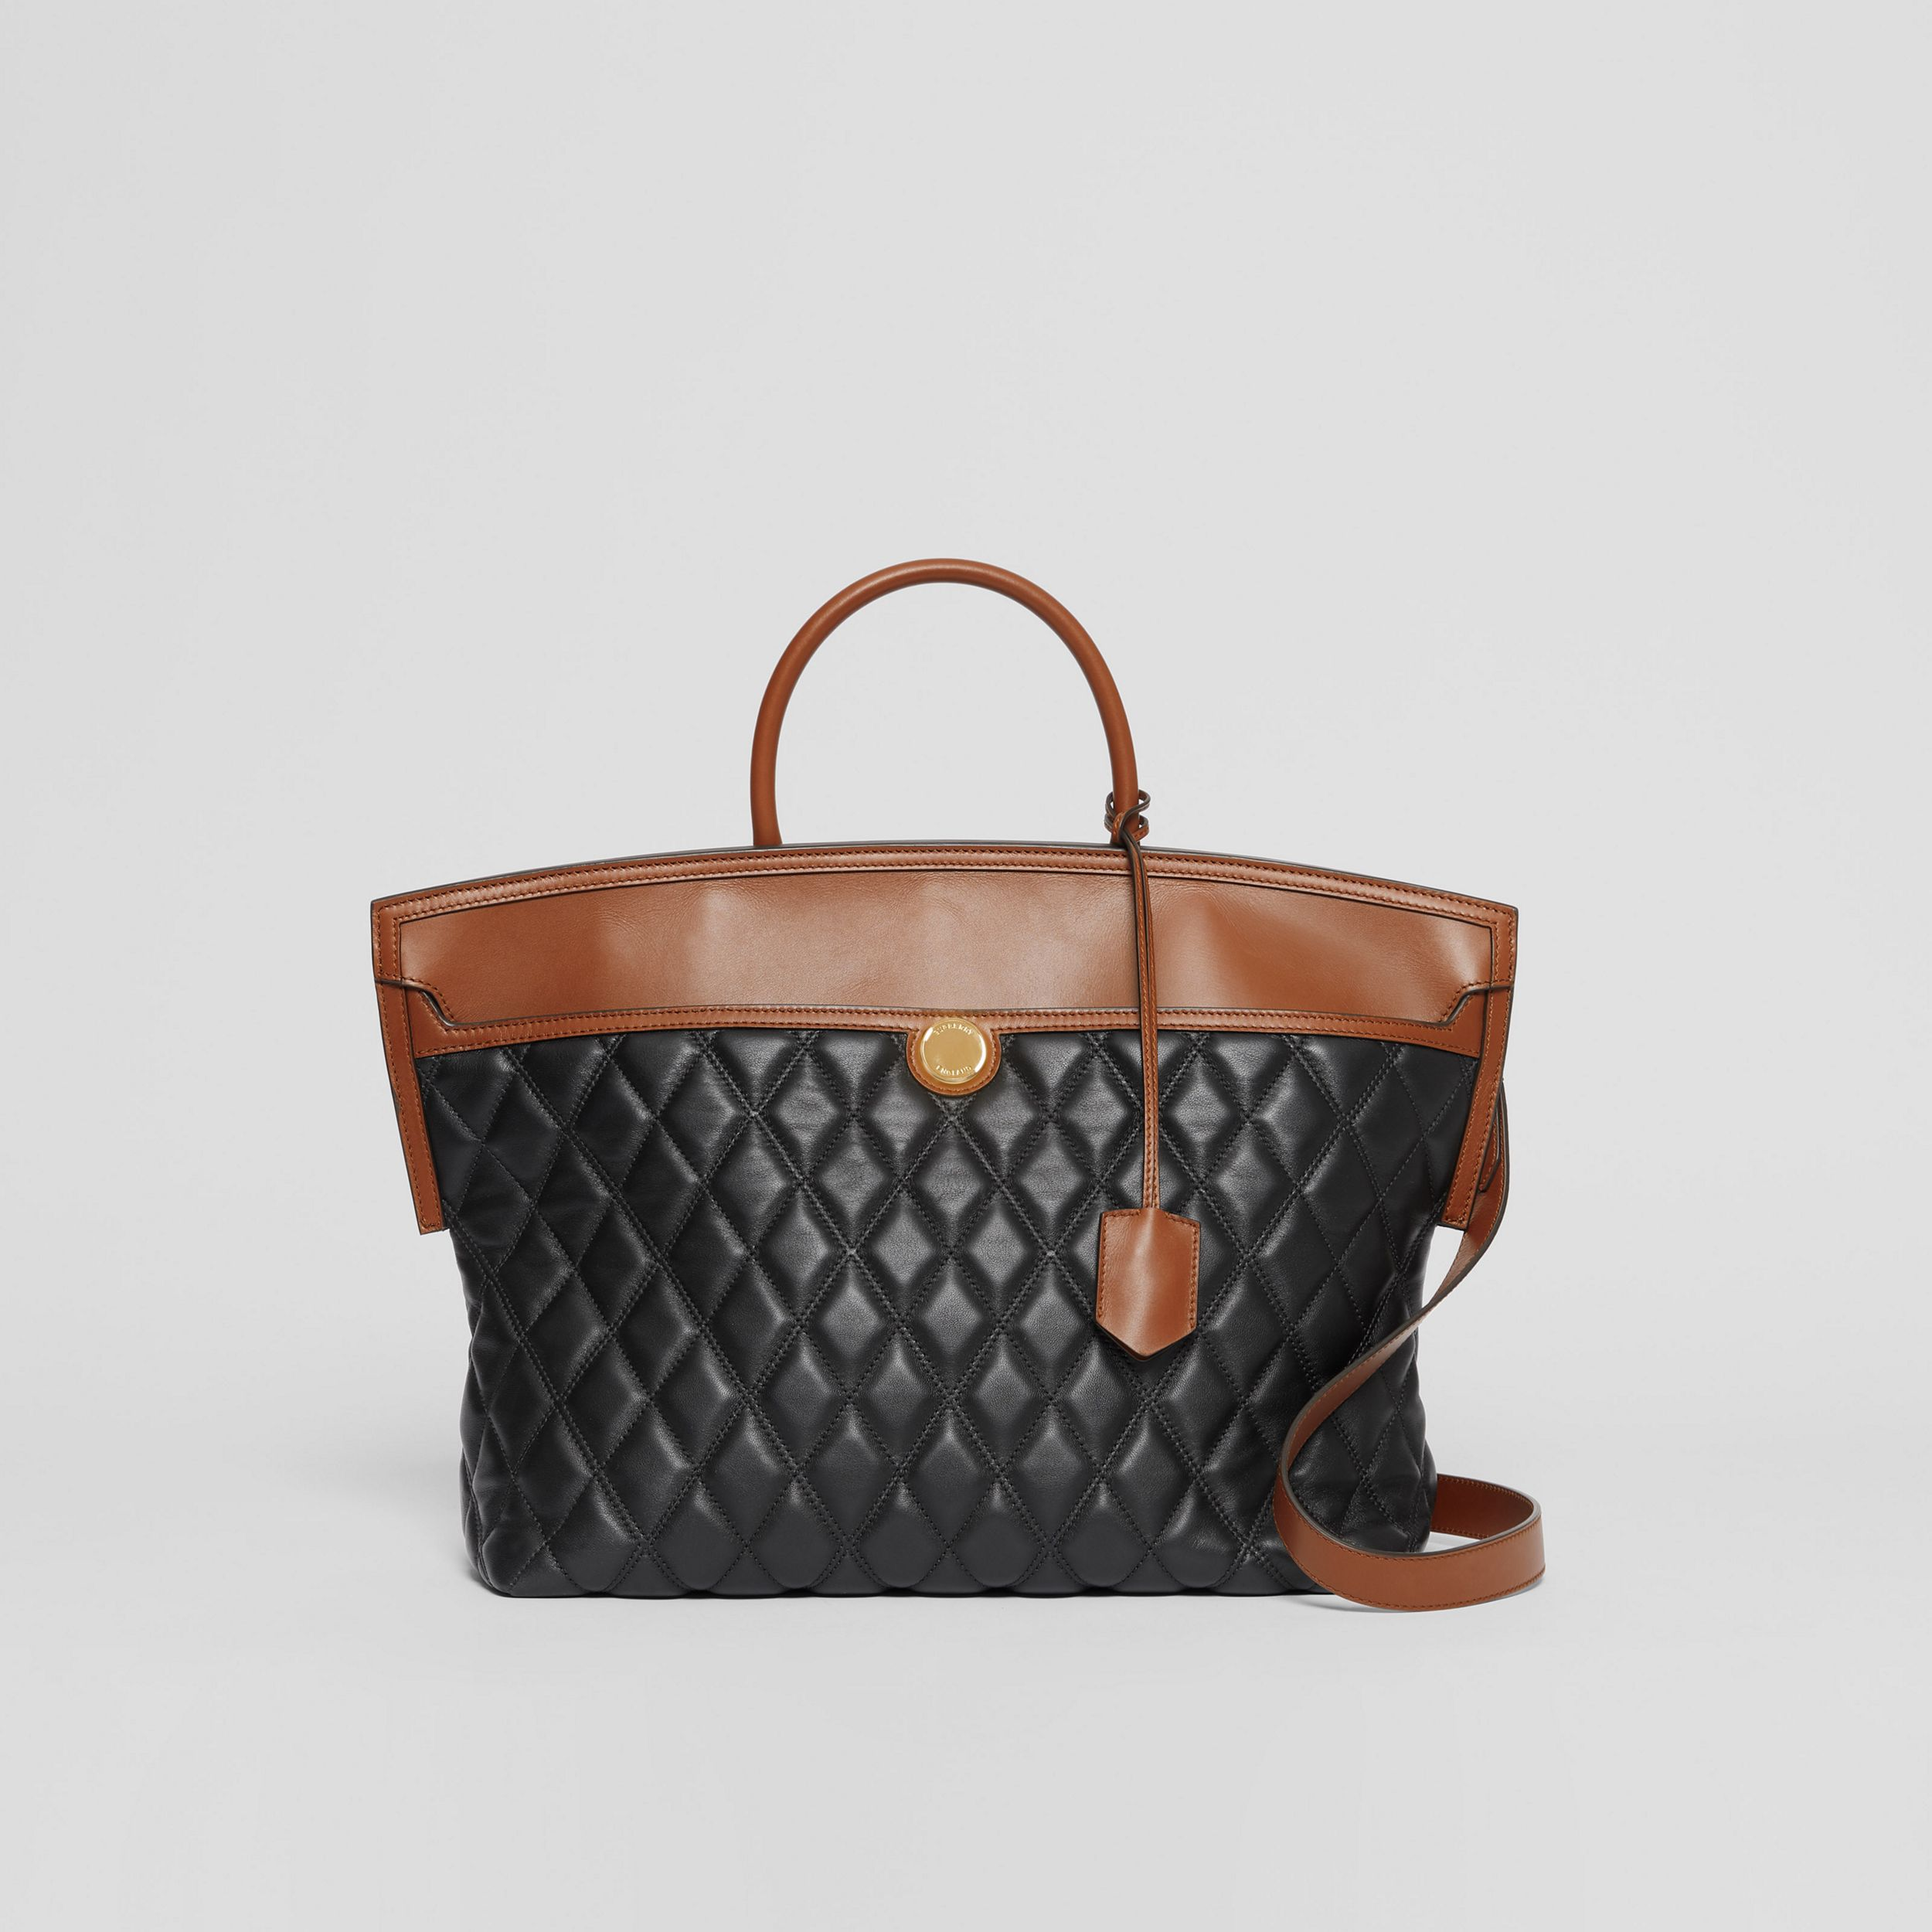 Quilted Lambskin Society Top Handle Bag in Black/brown - Women | Burberry Hong Kong S.A.R. - 1